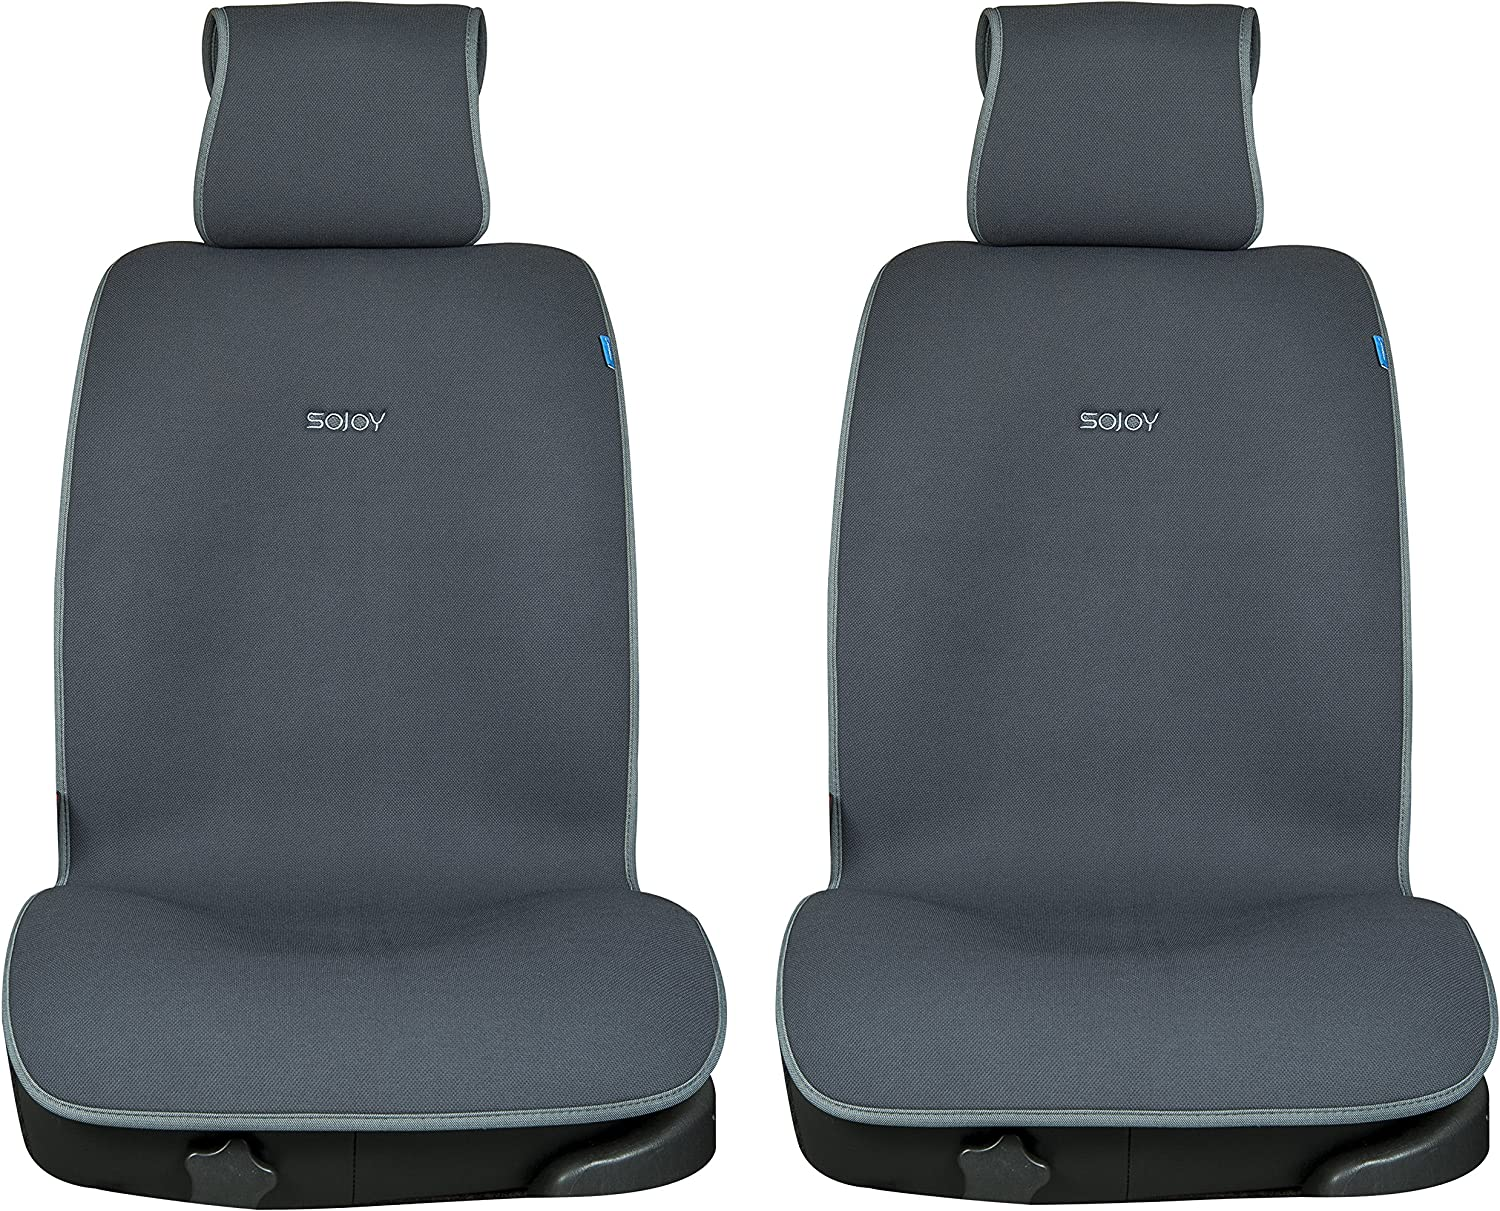 iHealthComfort Cooling Summer and Warming Winter Front Set Car Seat Cushion Covers (Dark Grey) bene180523